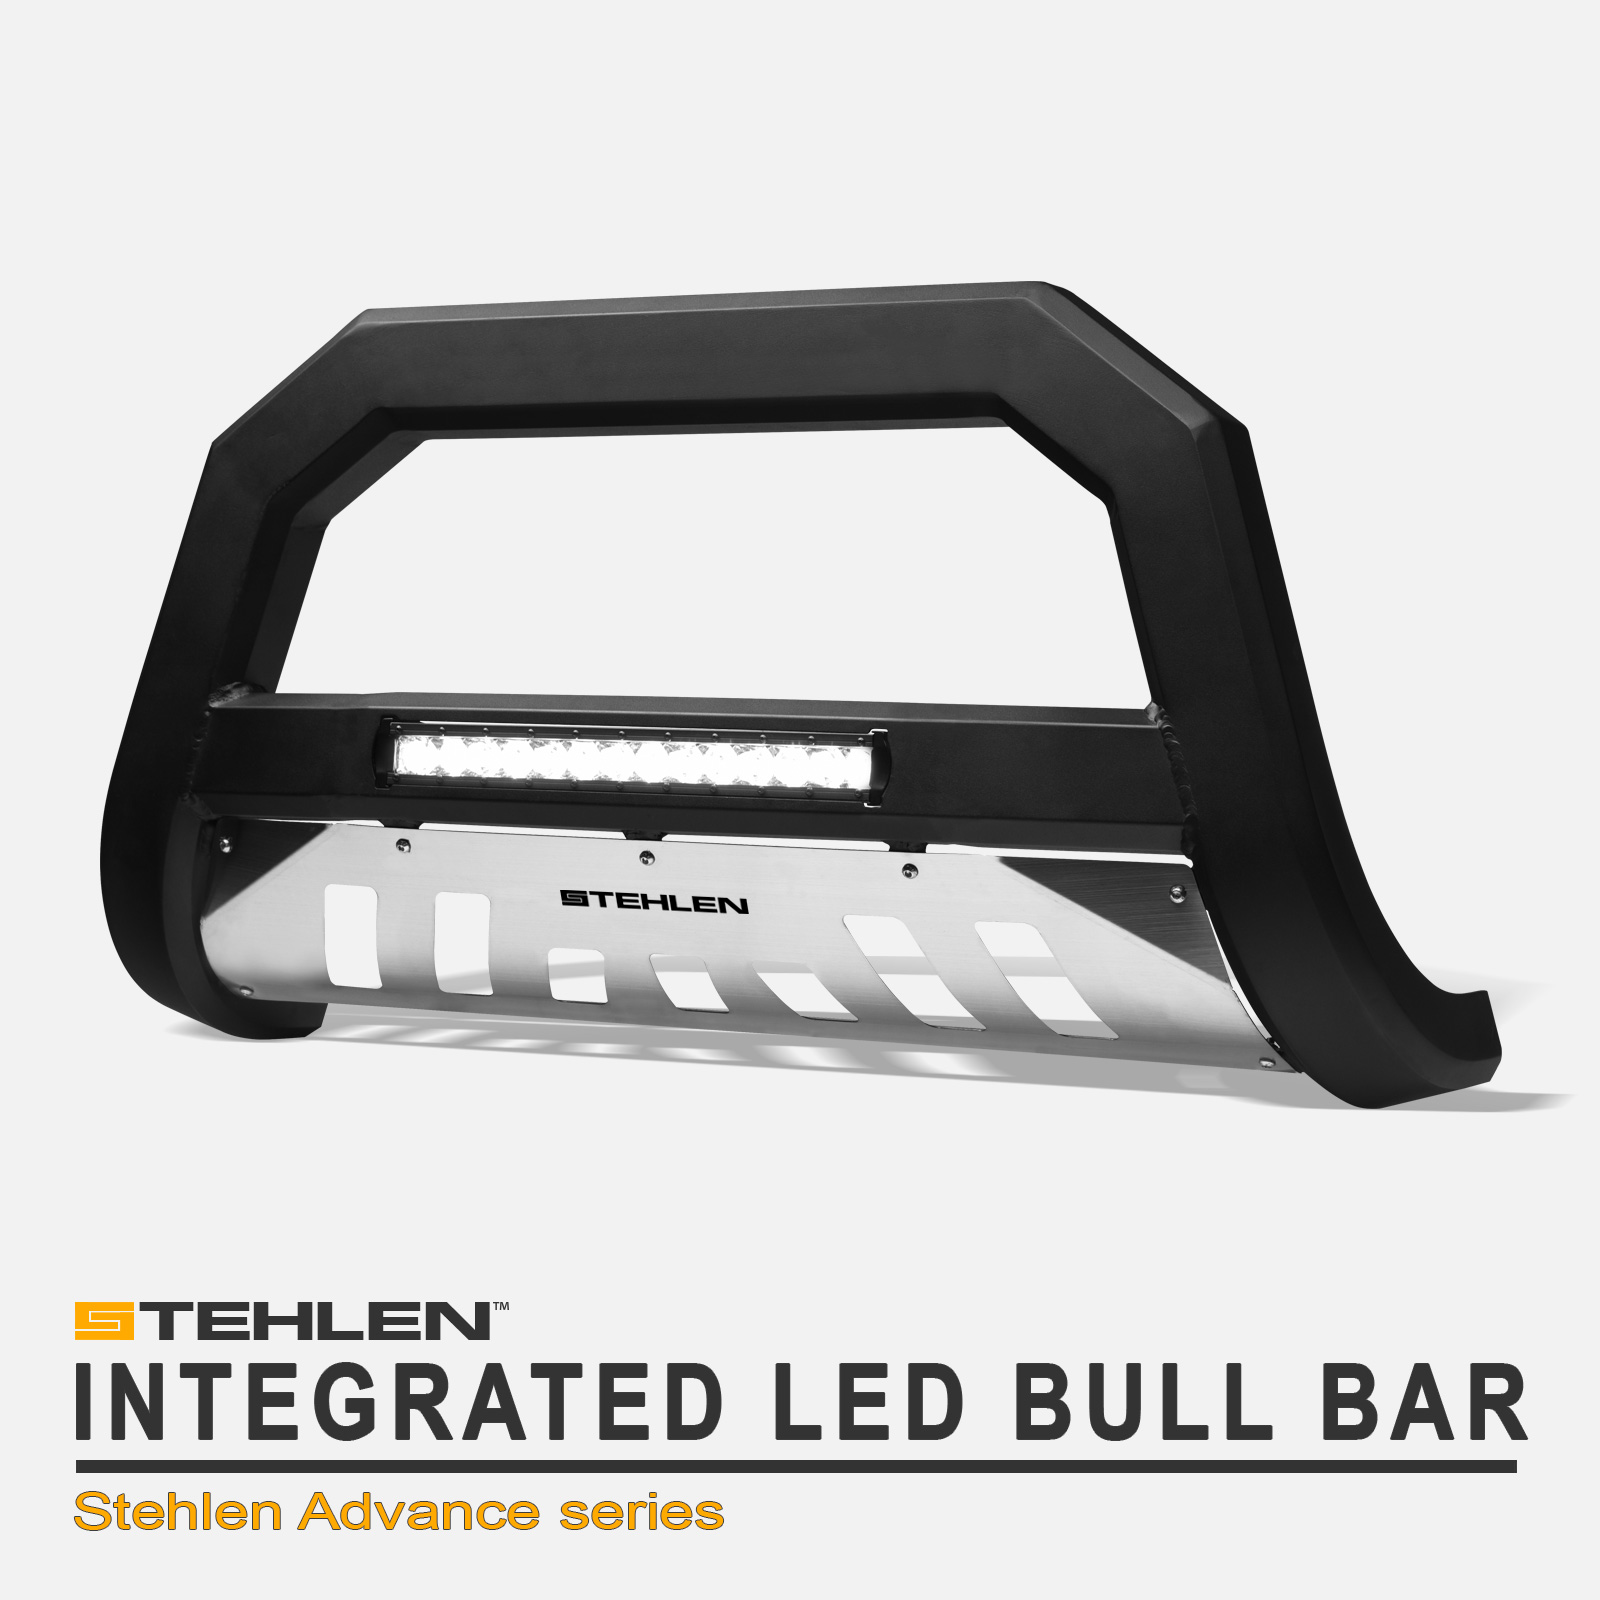 1997-2002 Expedition Stehlen 714937183377 Advance Series Bull Bar Matte Black For 1997-2003 Ford F150 F250 Light Duty 2004 Heritage